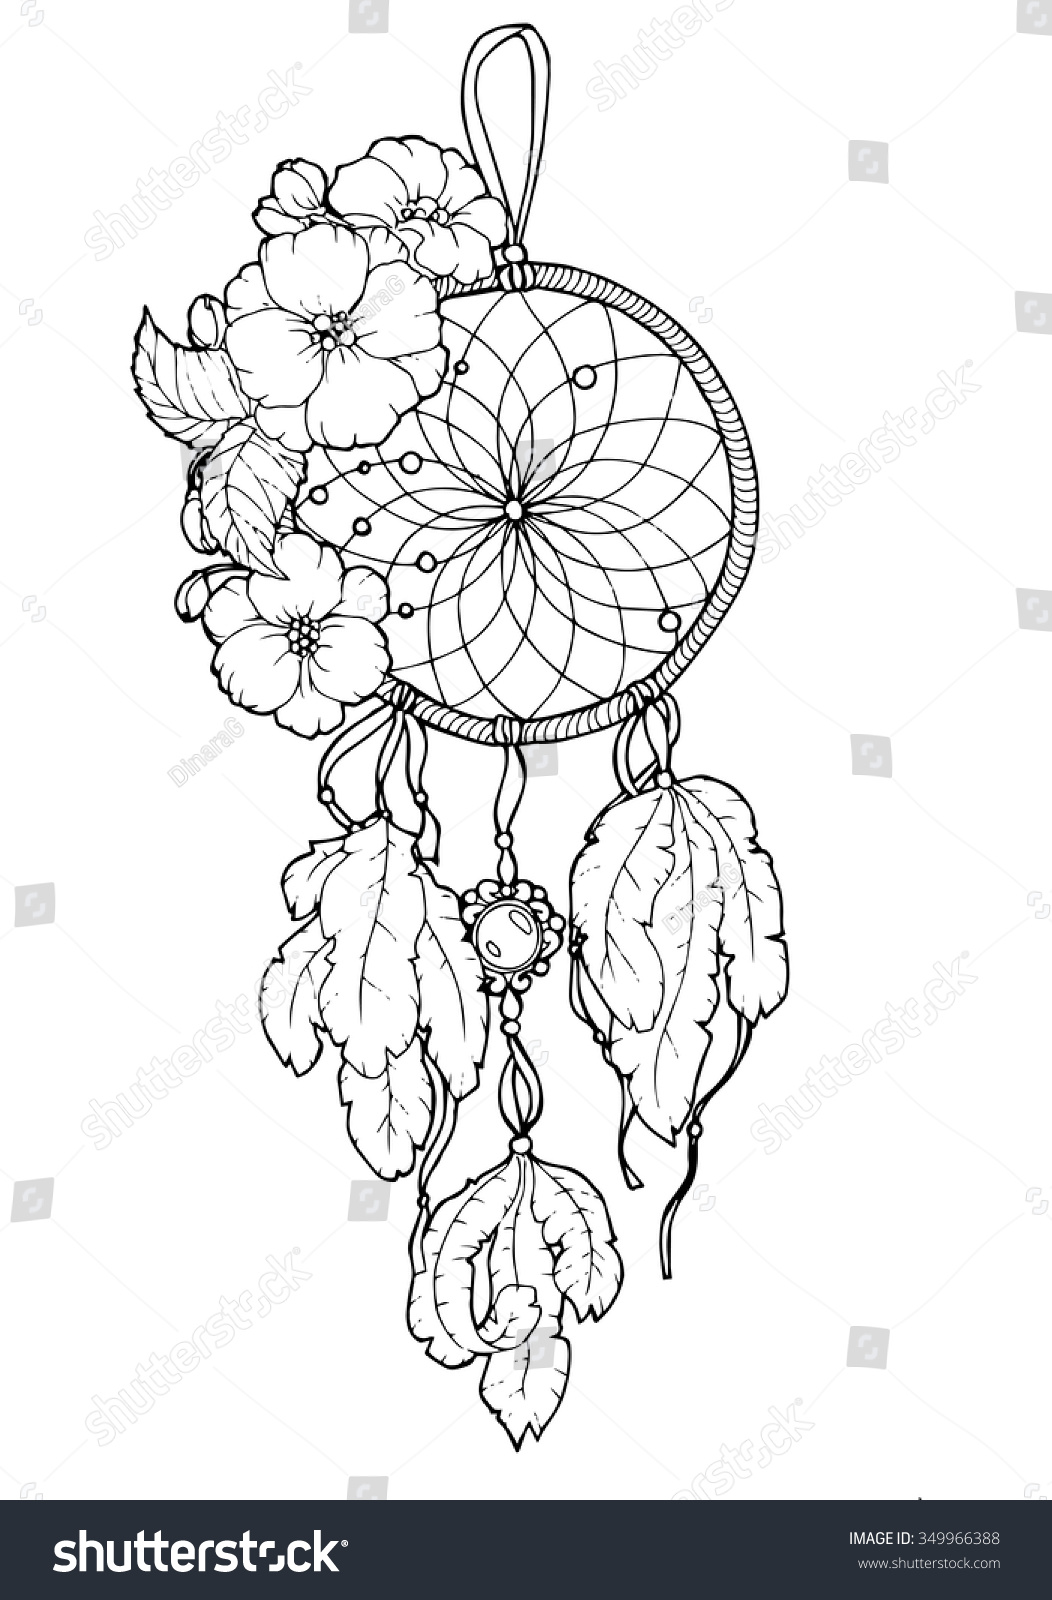 Line Art Illustration : Dreamcatcher vector illustration lineart style graphic